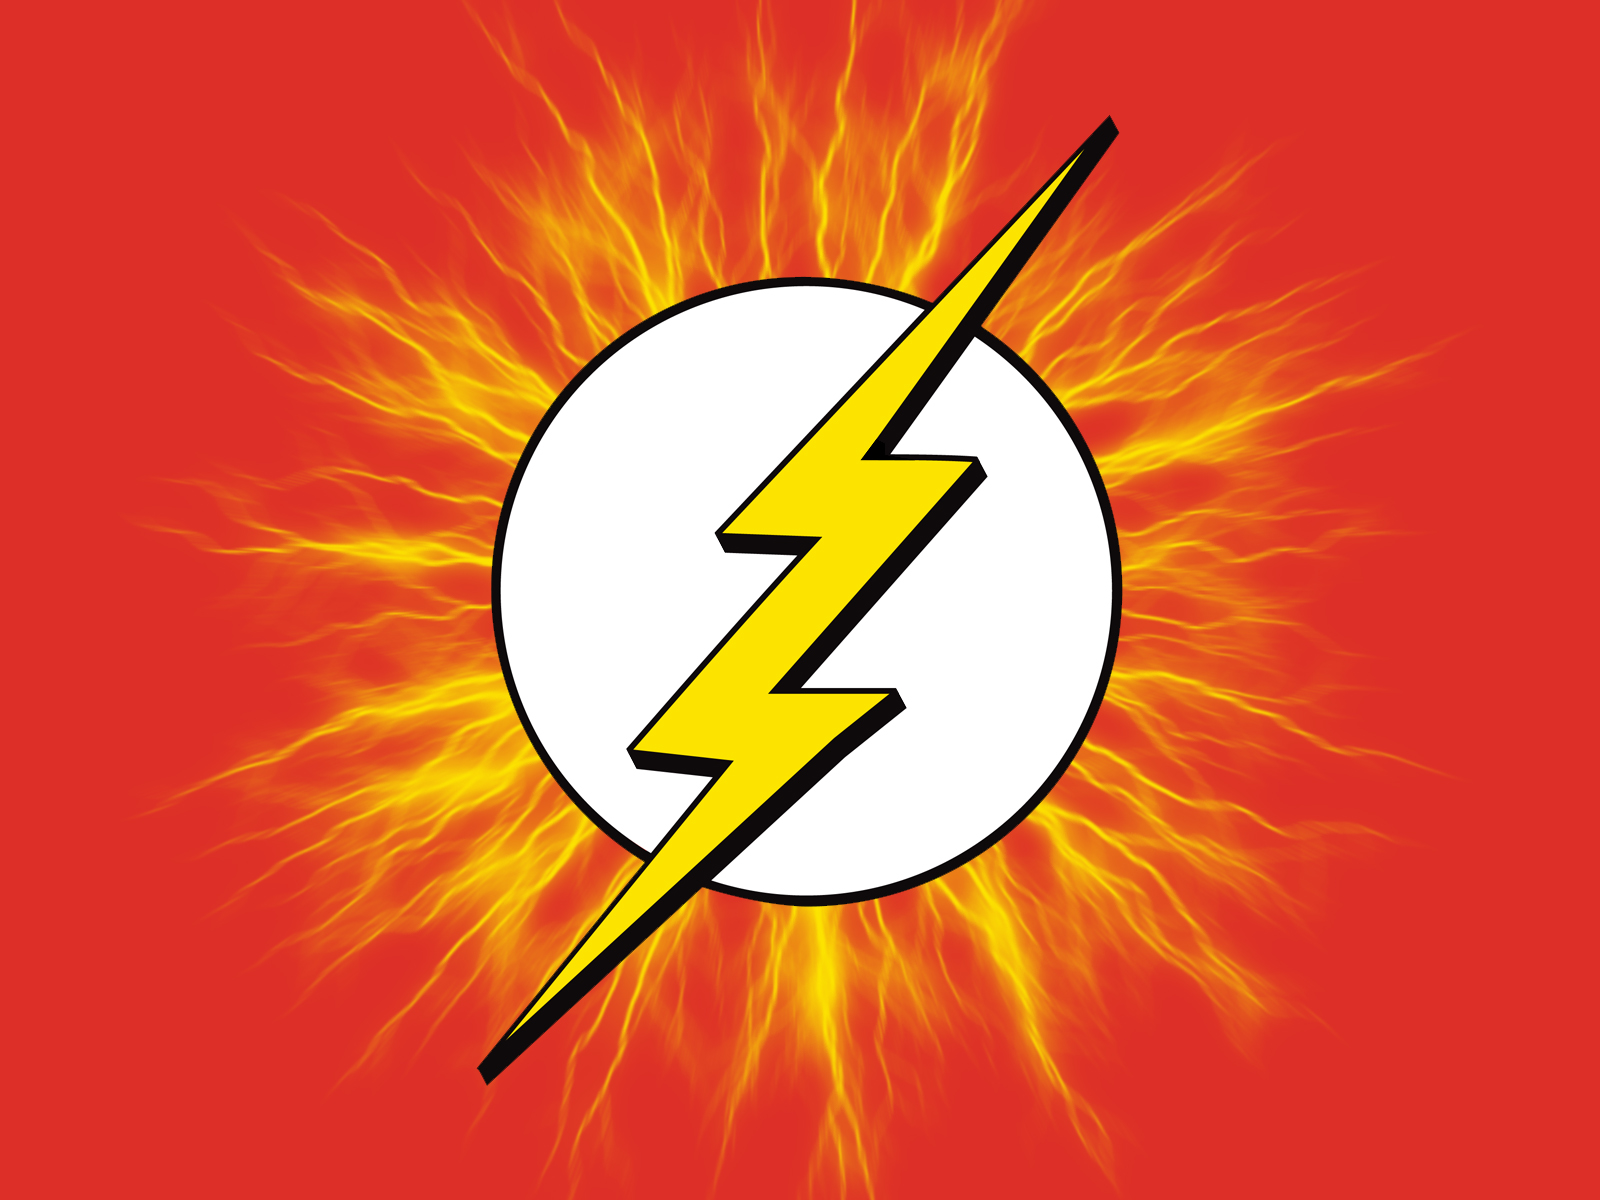 The Flash Logo Wallpaper The flash by wolverine080976 1600x1200